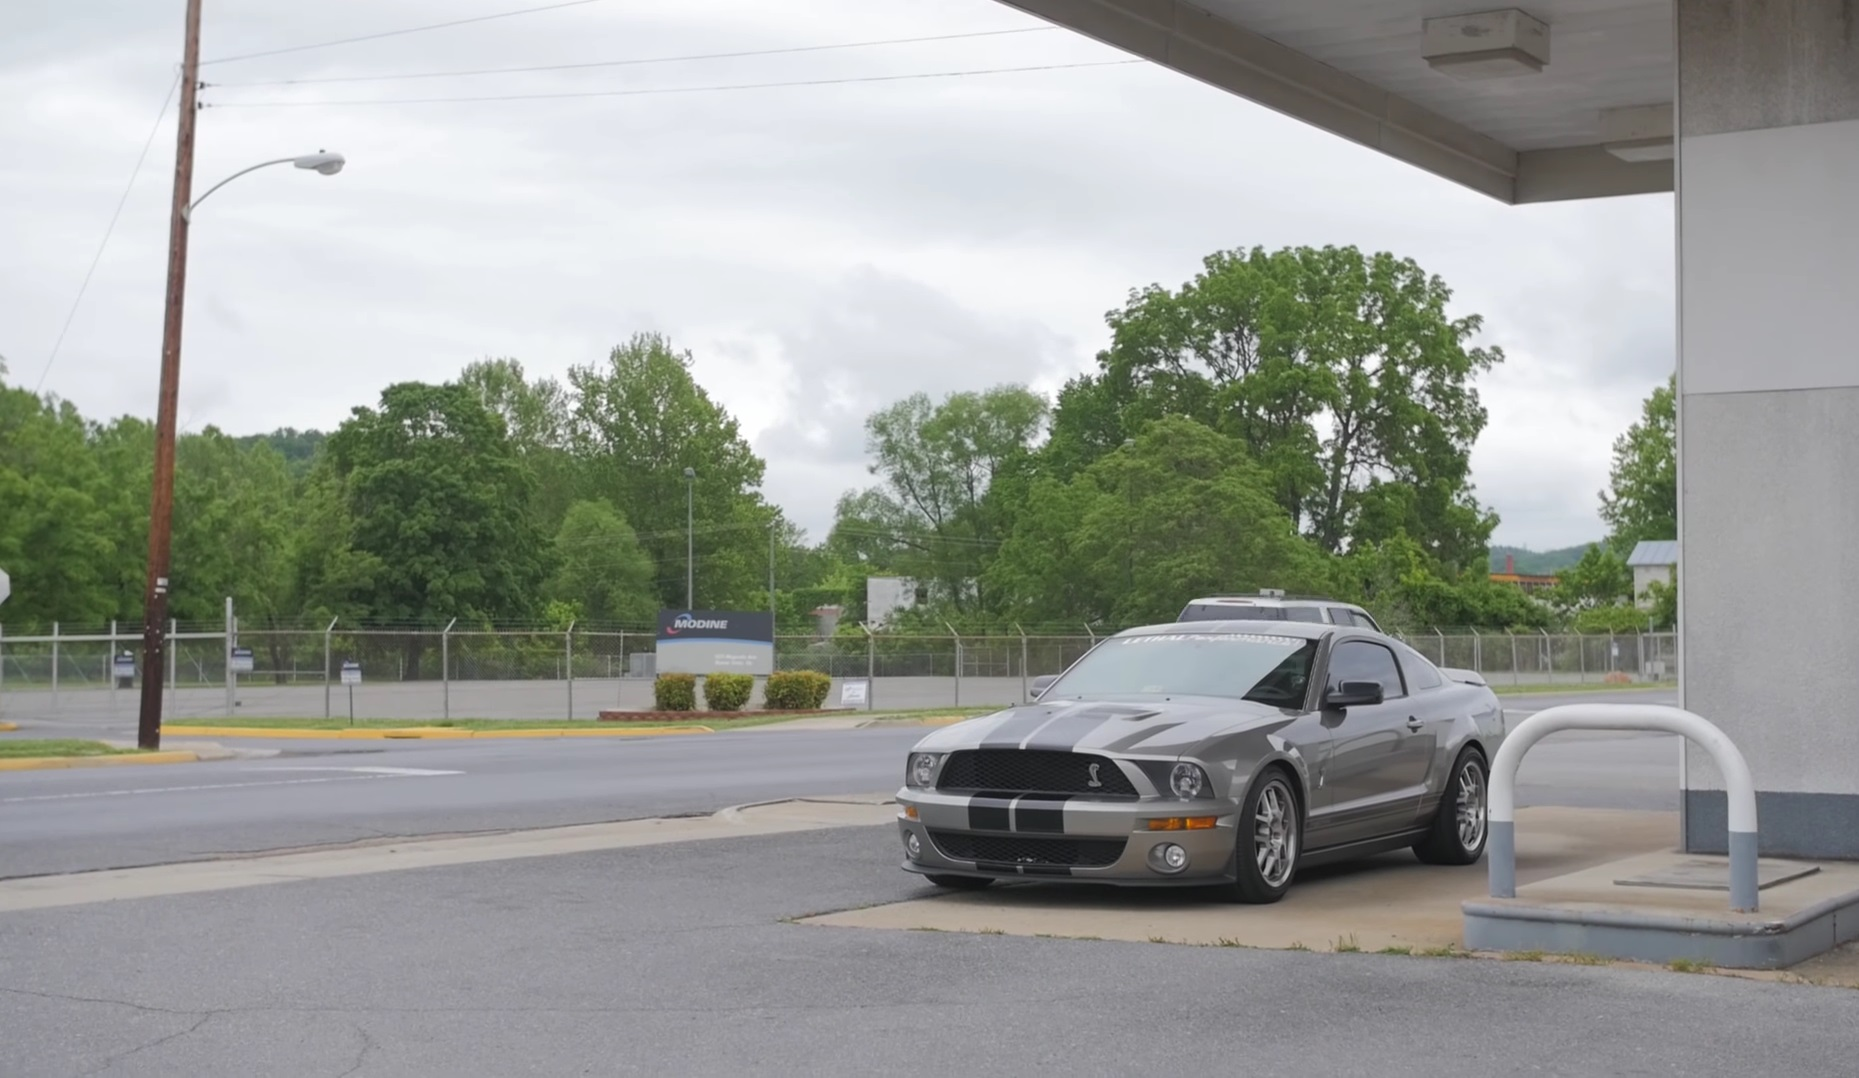 Video: 2008 Ford Mustang Shelby GT500 - The Crowd Pleaser